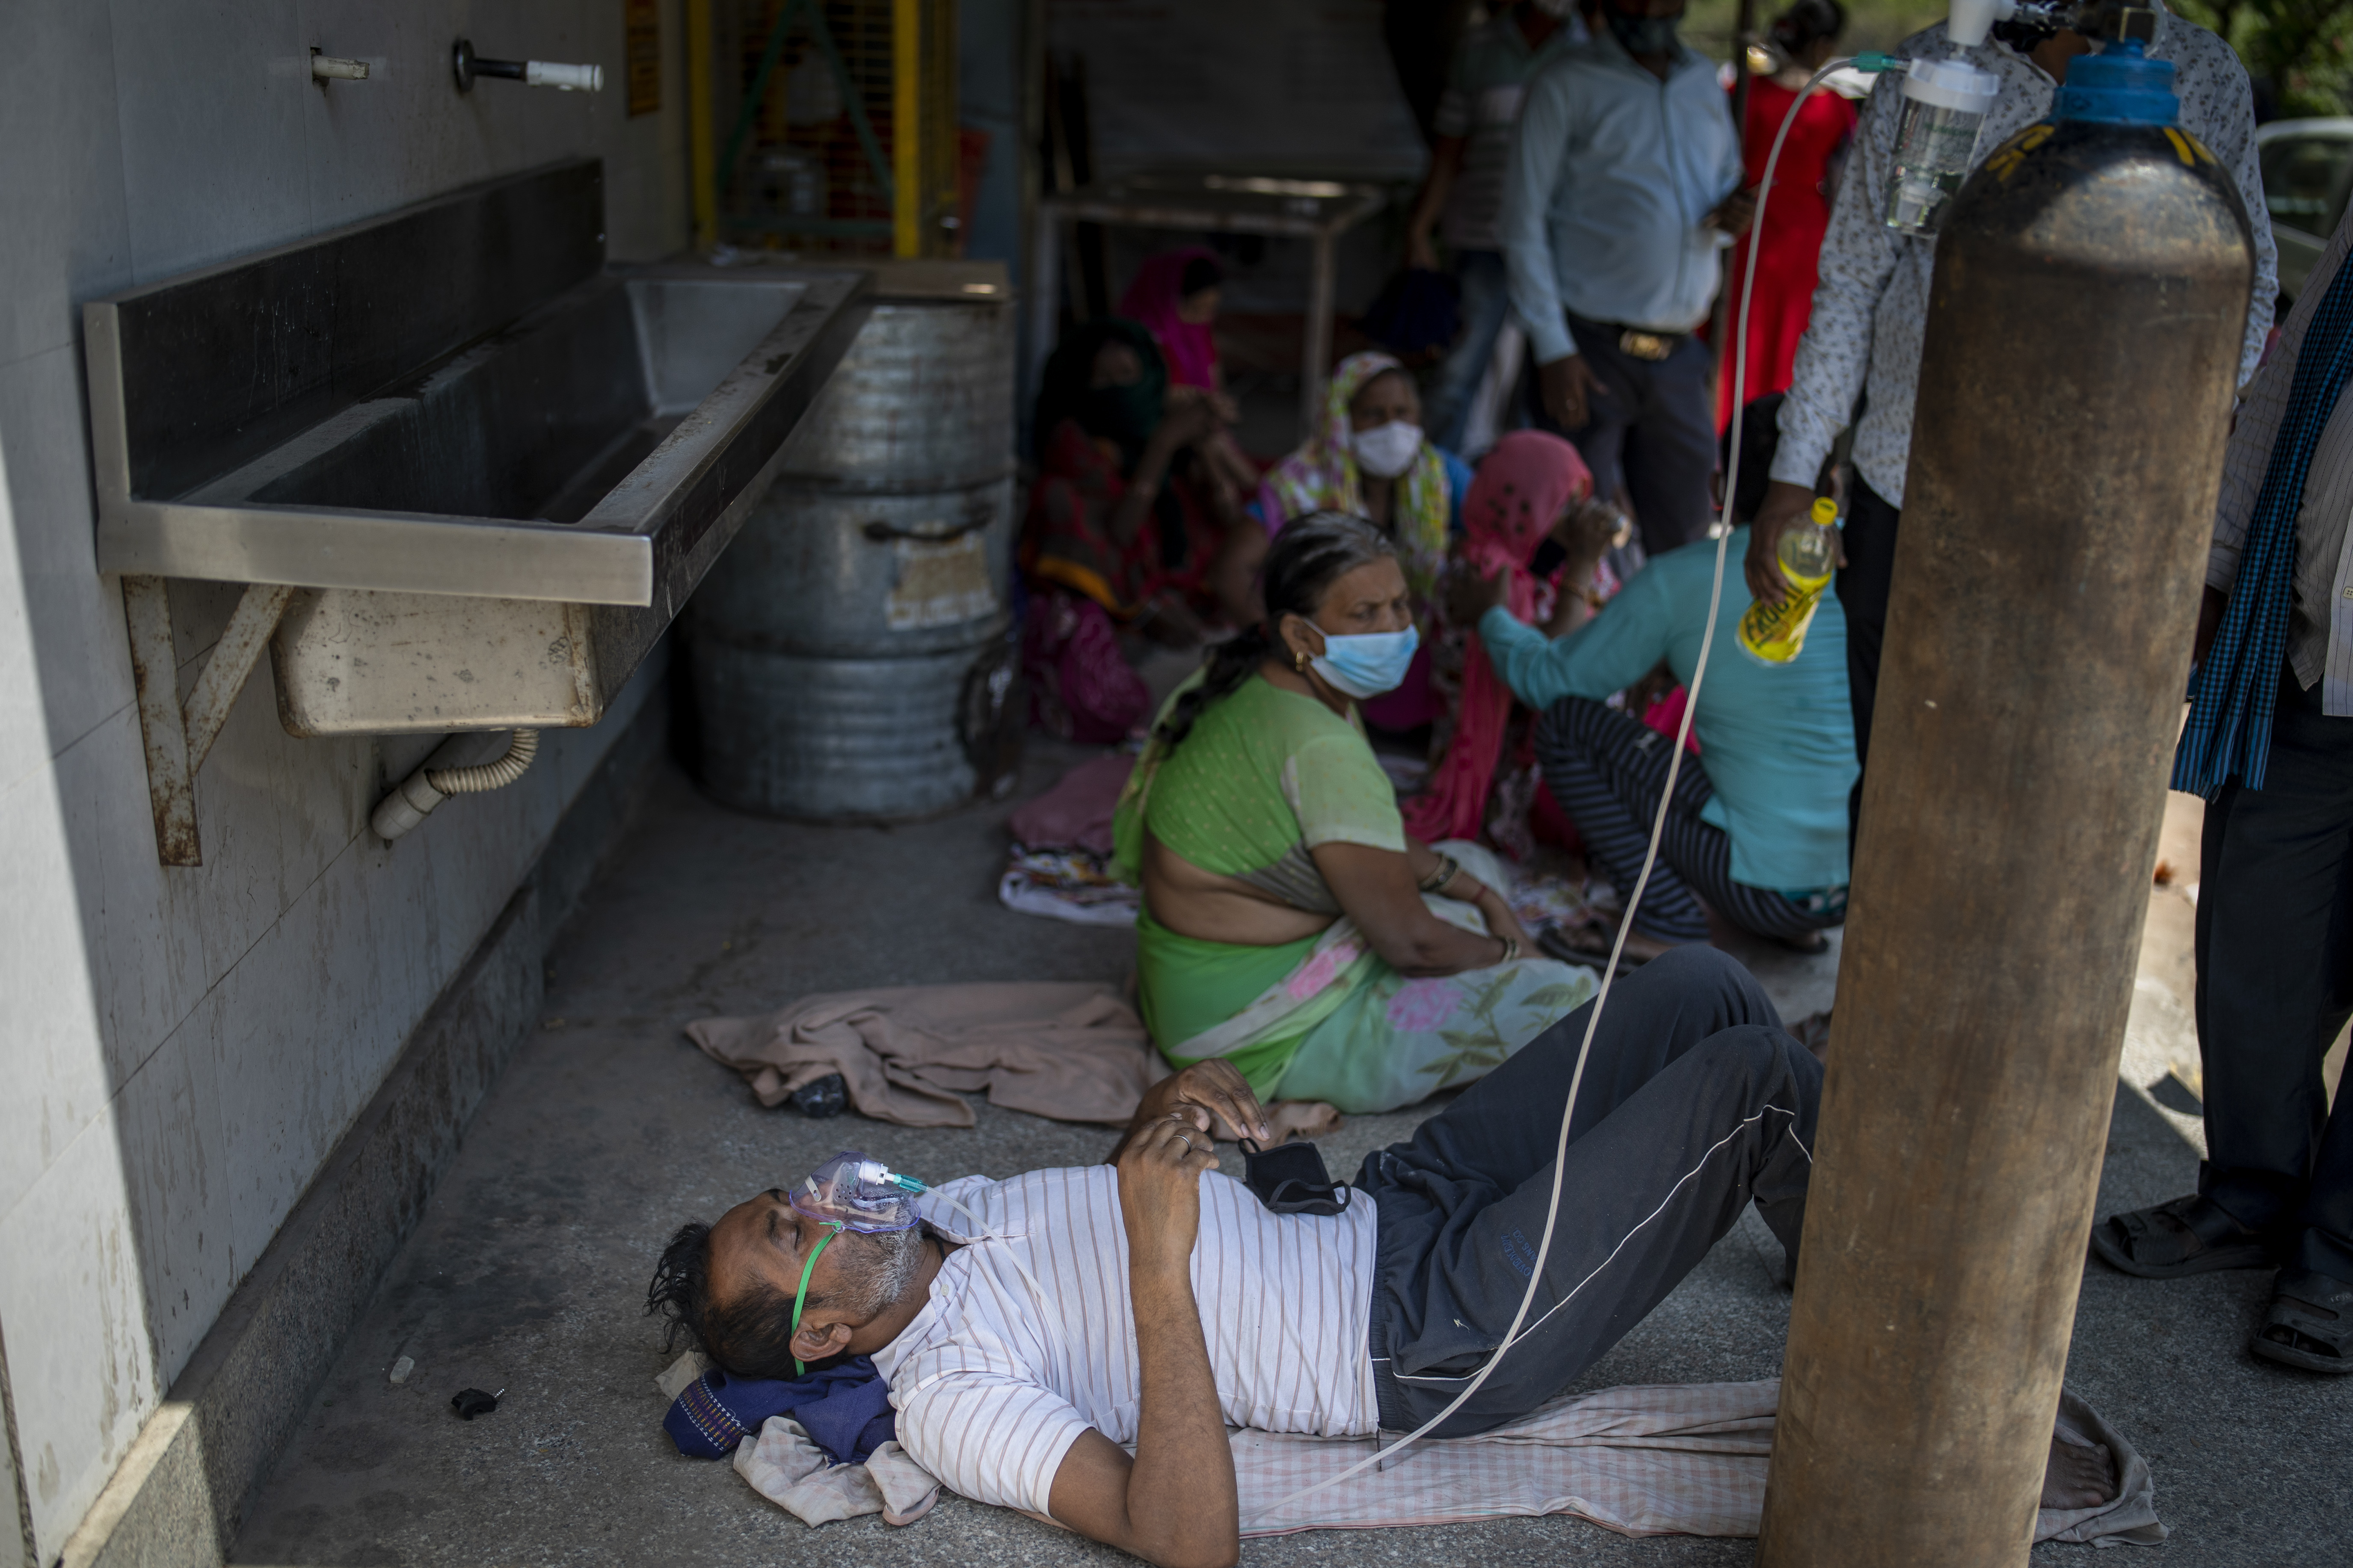 A patient receives oxygen outside a gurdwara, a Sikh house of worship, in New Delhi, India, Saturday. India's medical oxygen shortage has become so dire that this gurdwara began offering free breathing sessions with shared tanks to COVID-19 patients waiting for a hospital bed.